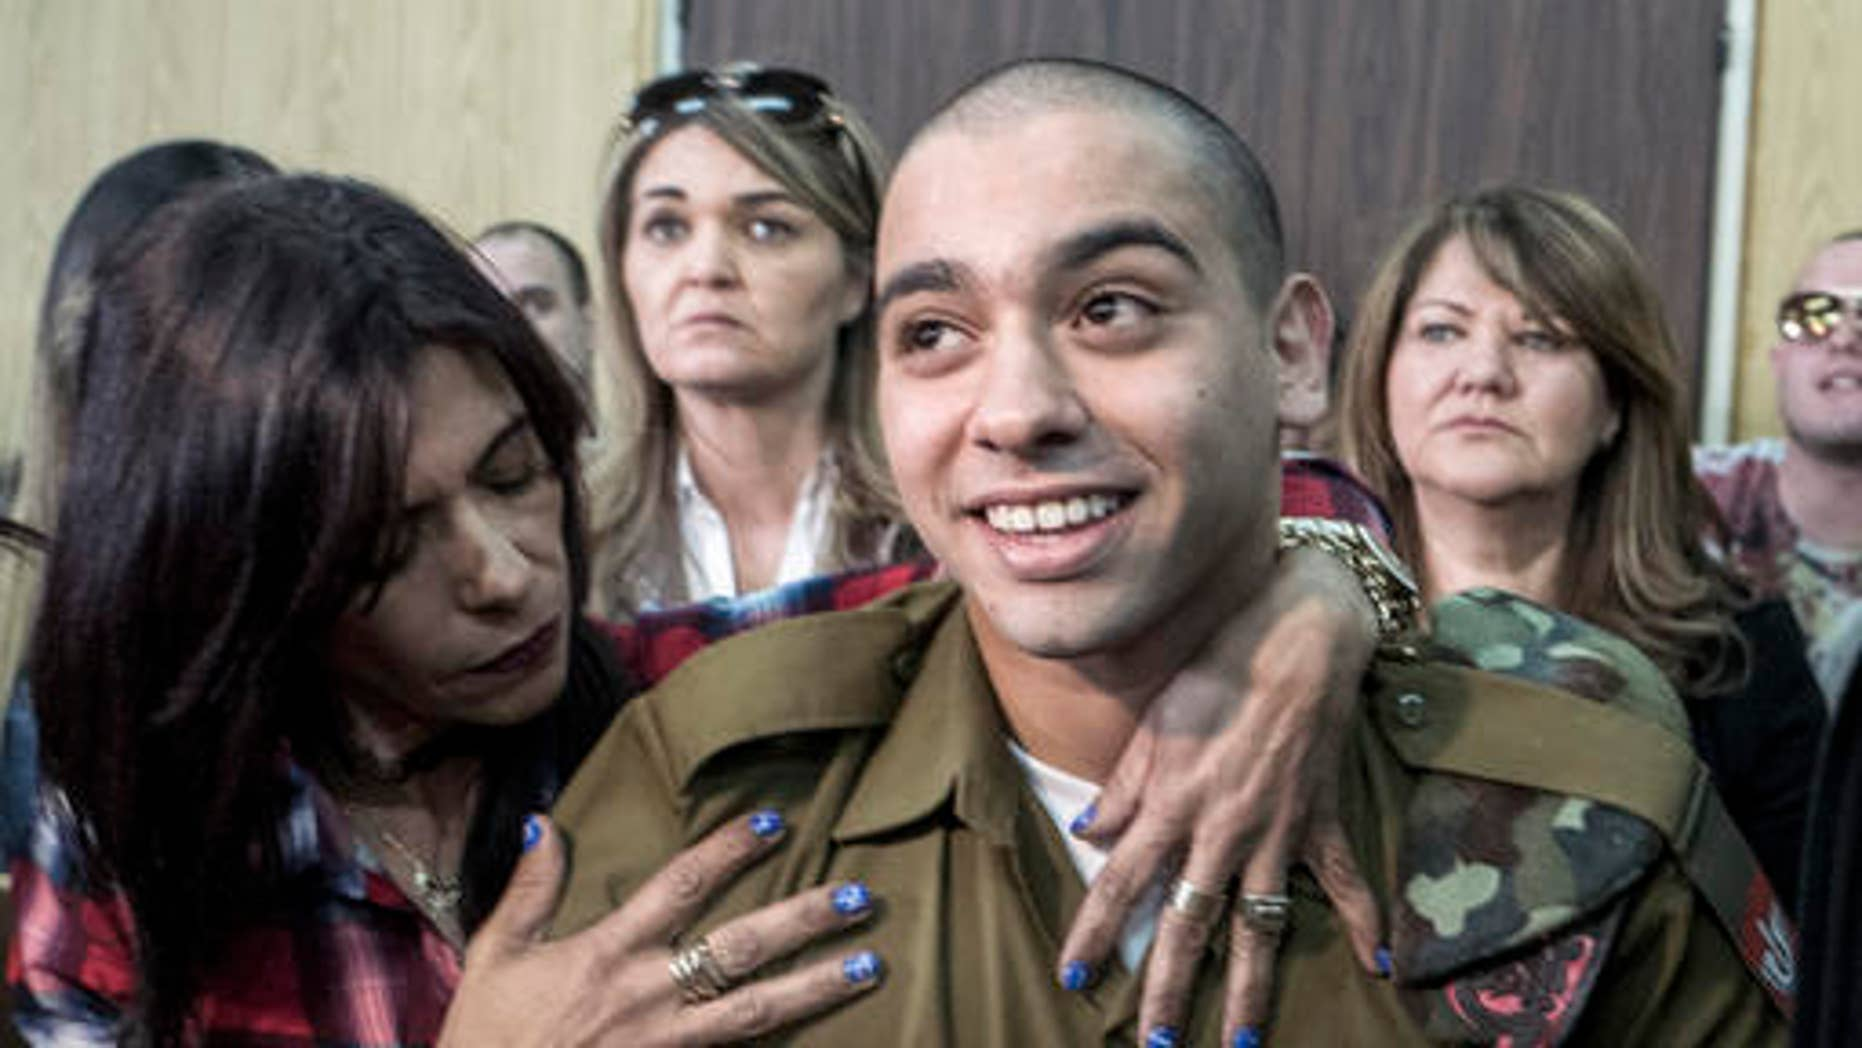 Elor Azaria embraced by his mother at the start of his sentencing hearing.